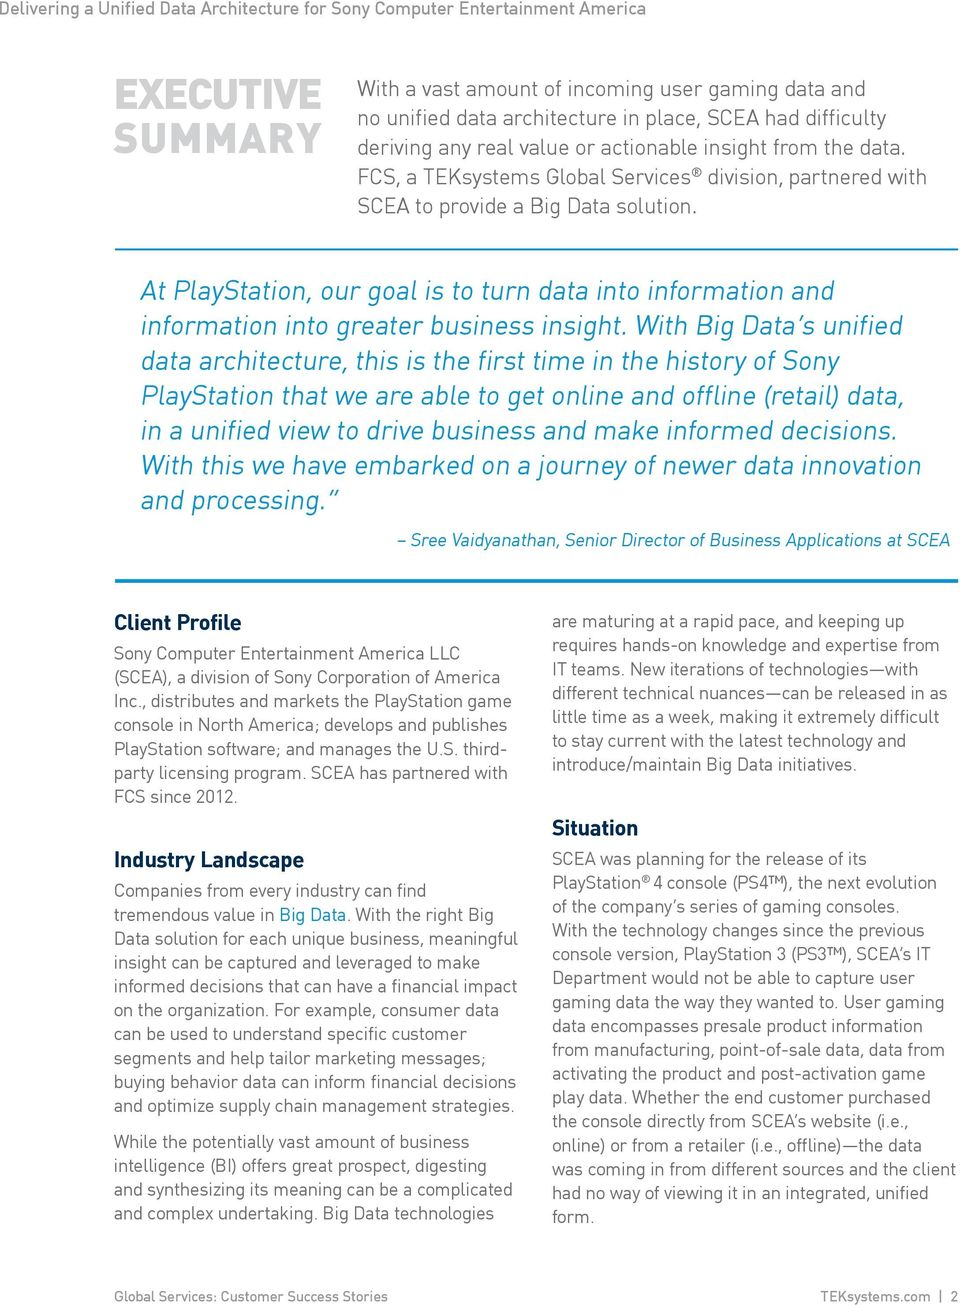 With Big Data s unified data architecture, this is the first time in the history of Sony PlayStation that we are able to get online and offline (retail) data, in a unified view to drive business and